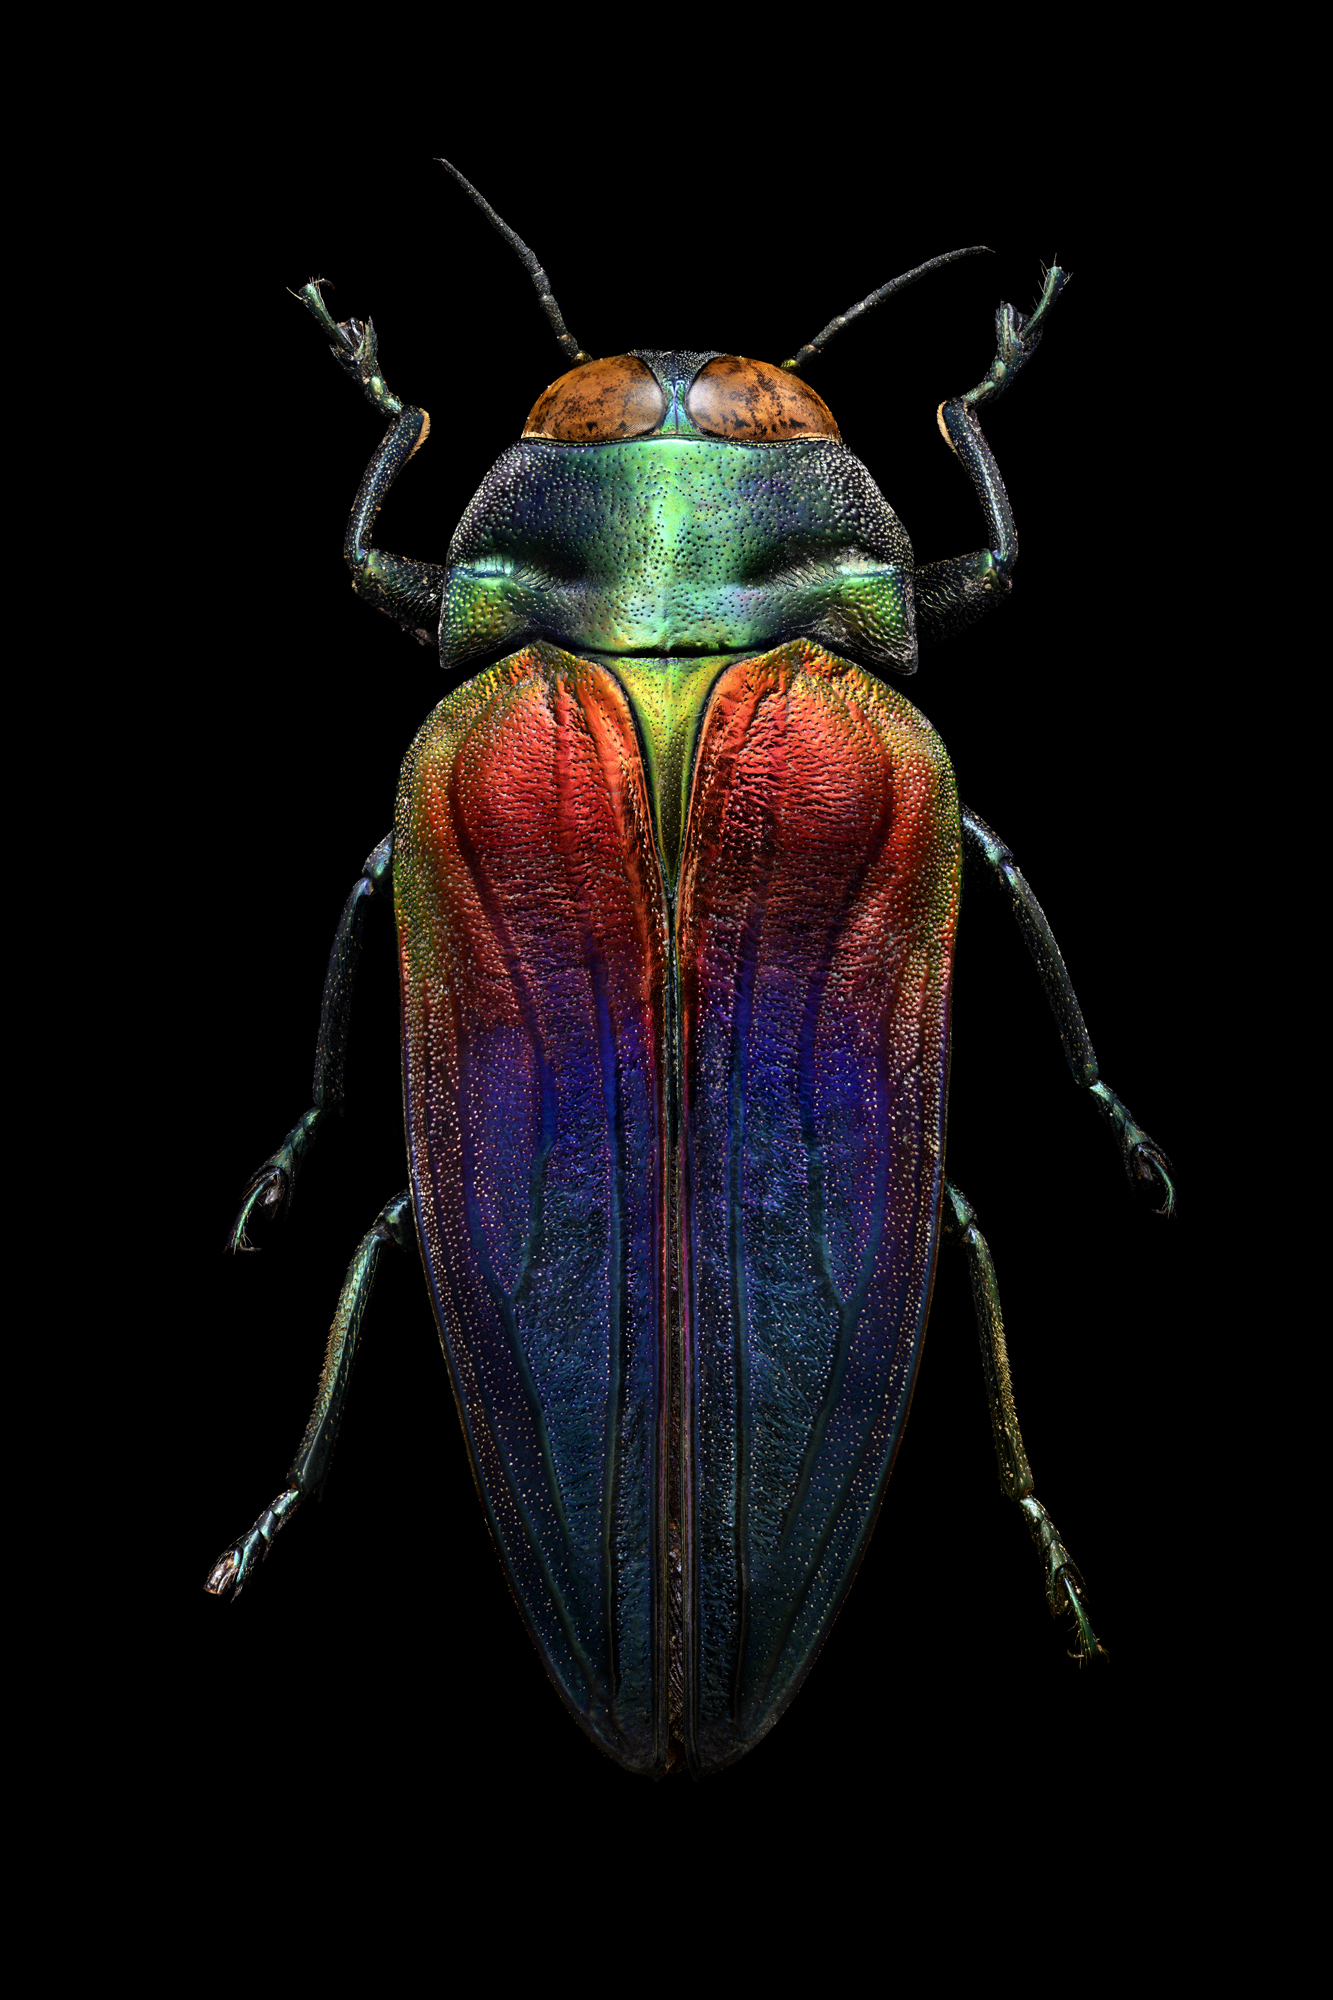 Tricolored Jewel Beetle